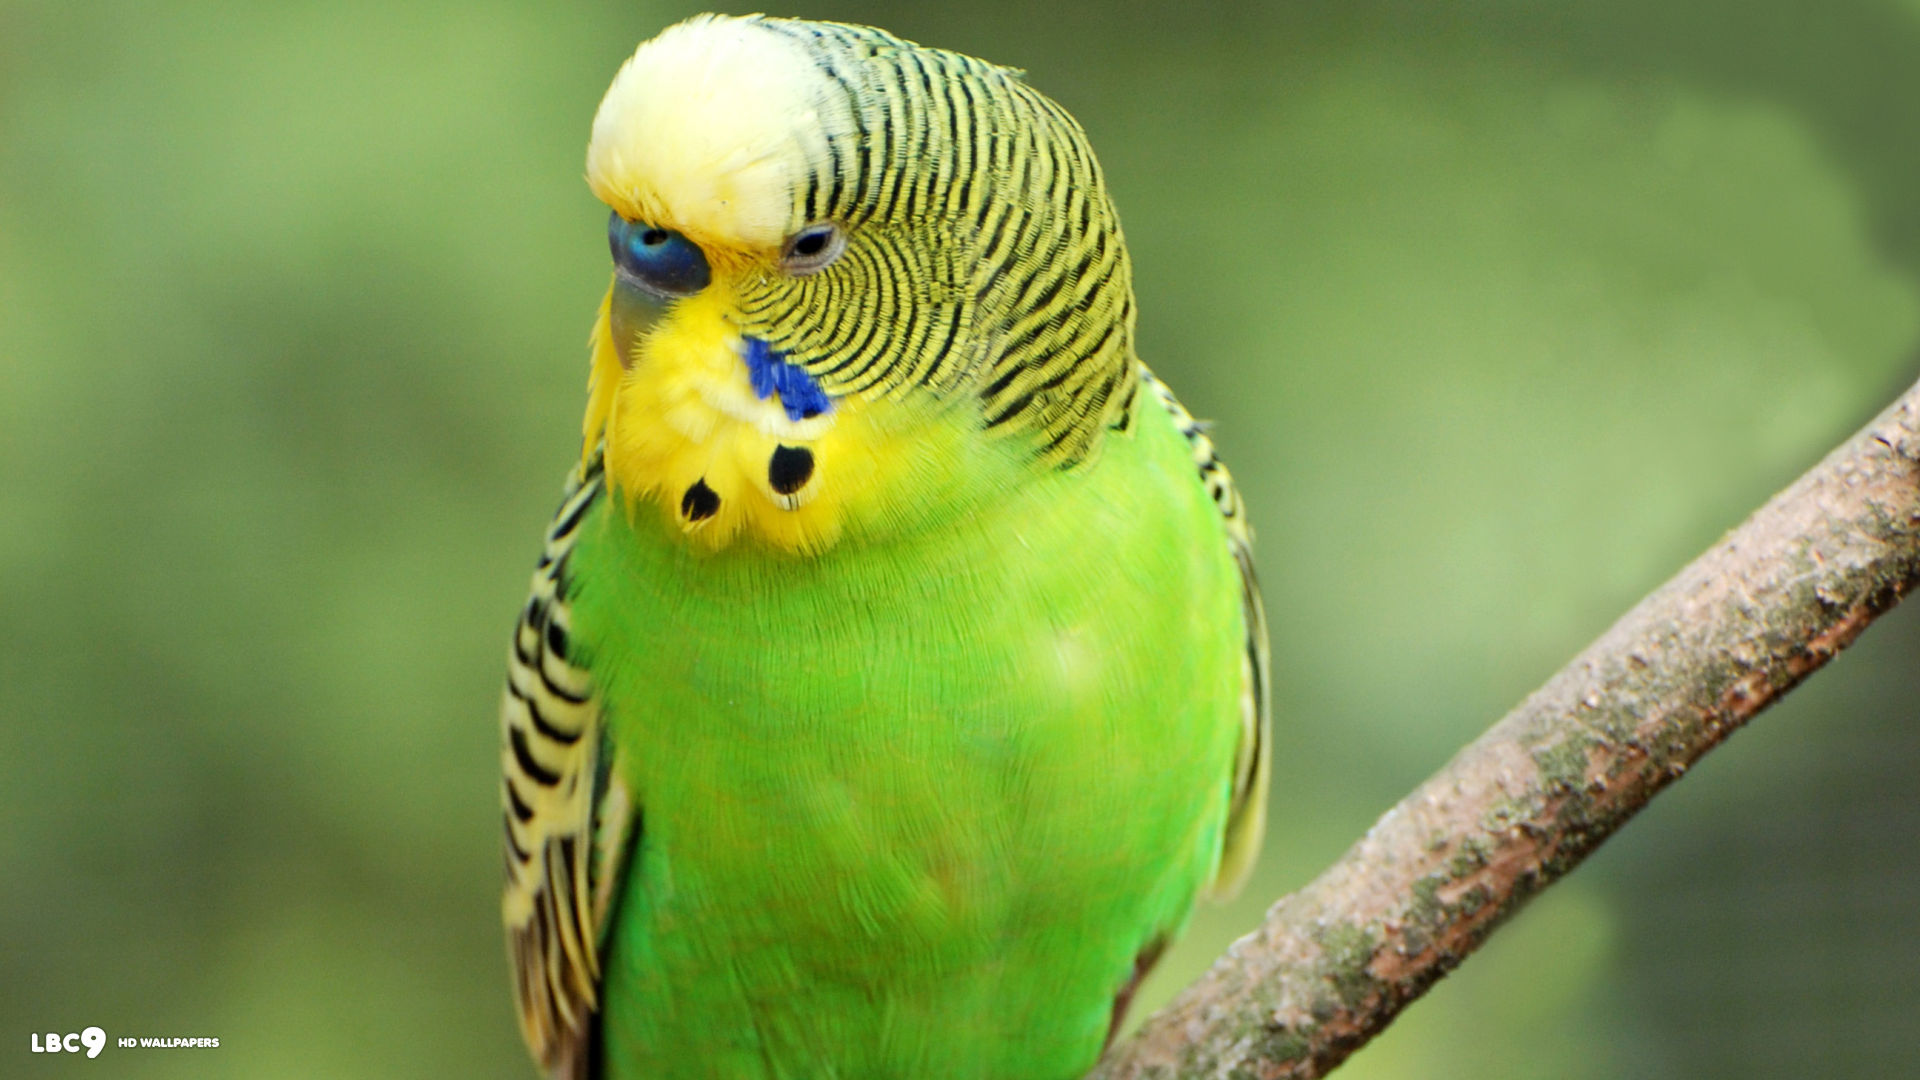 Parakeet budgie parrot bird tropical  wallpaper   1920x1080